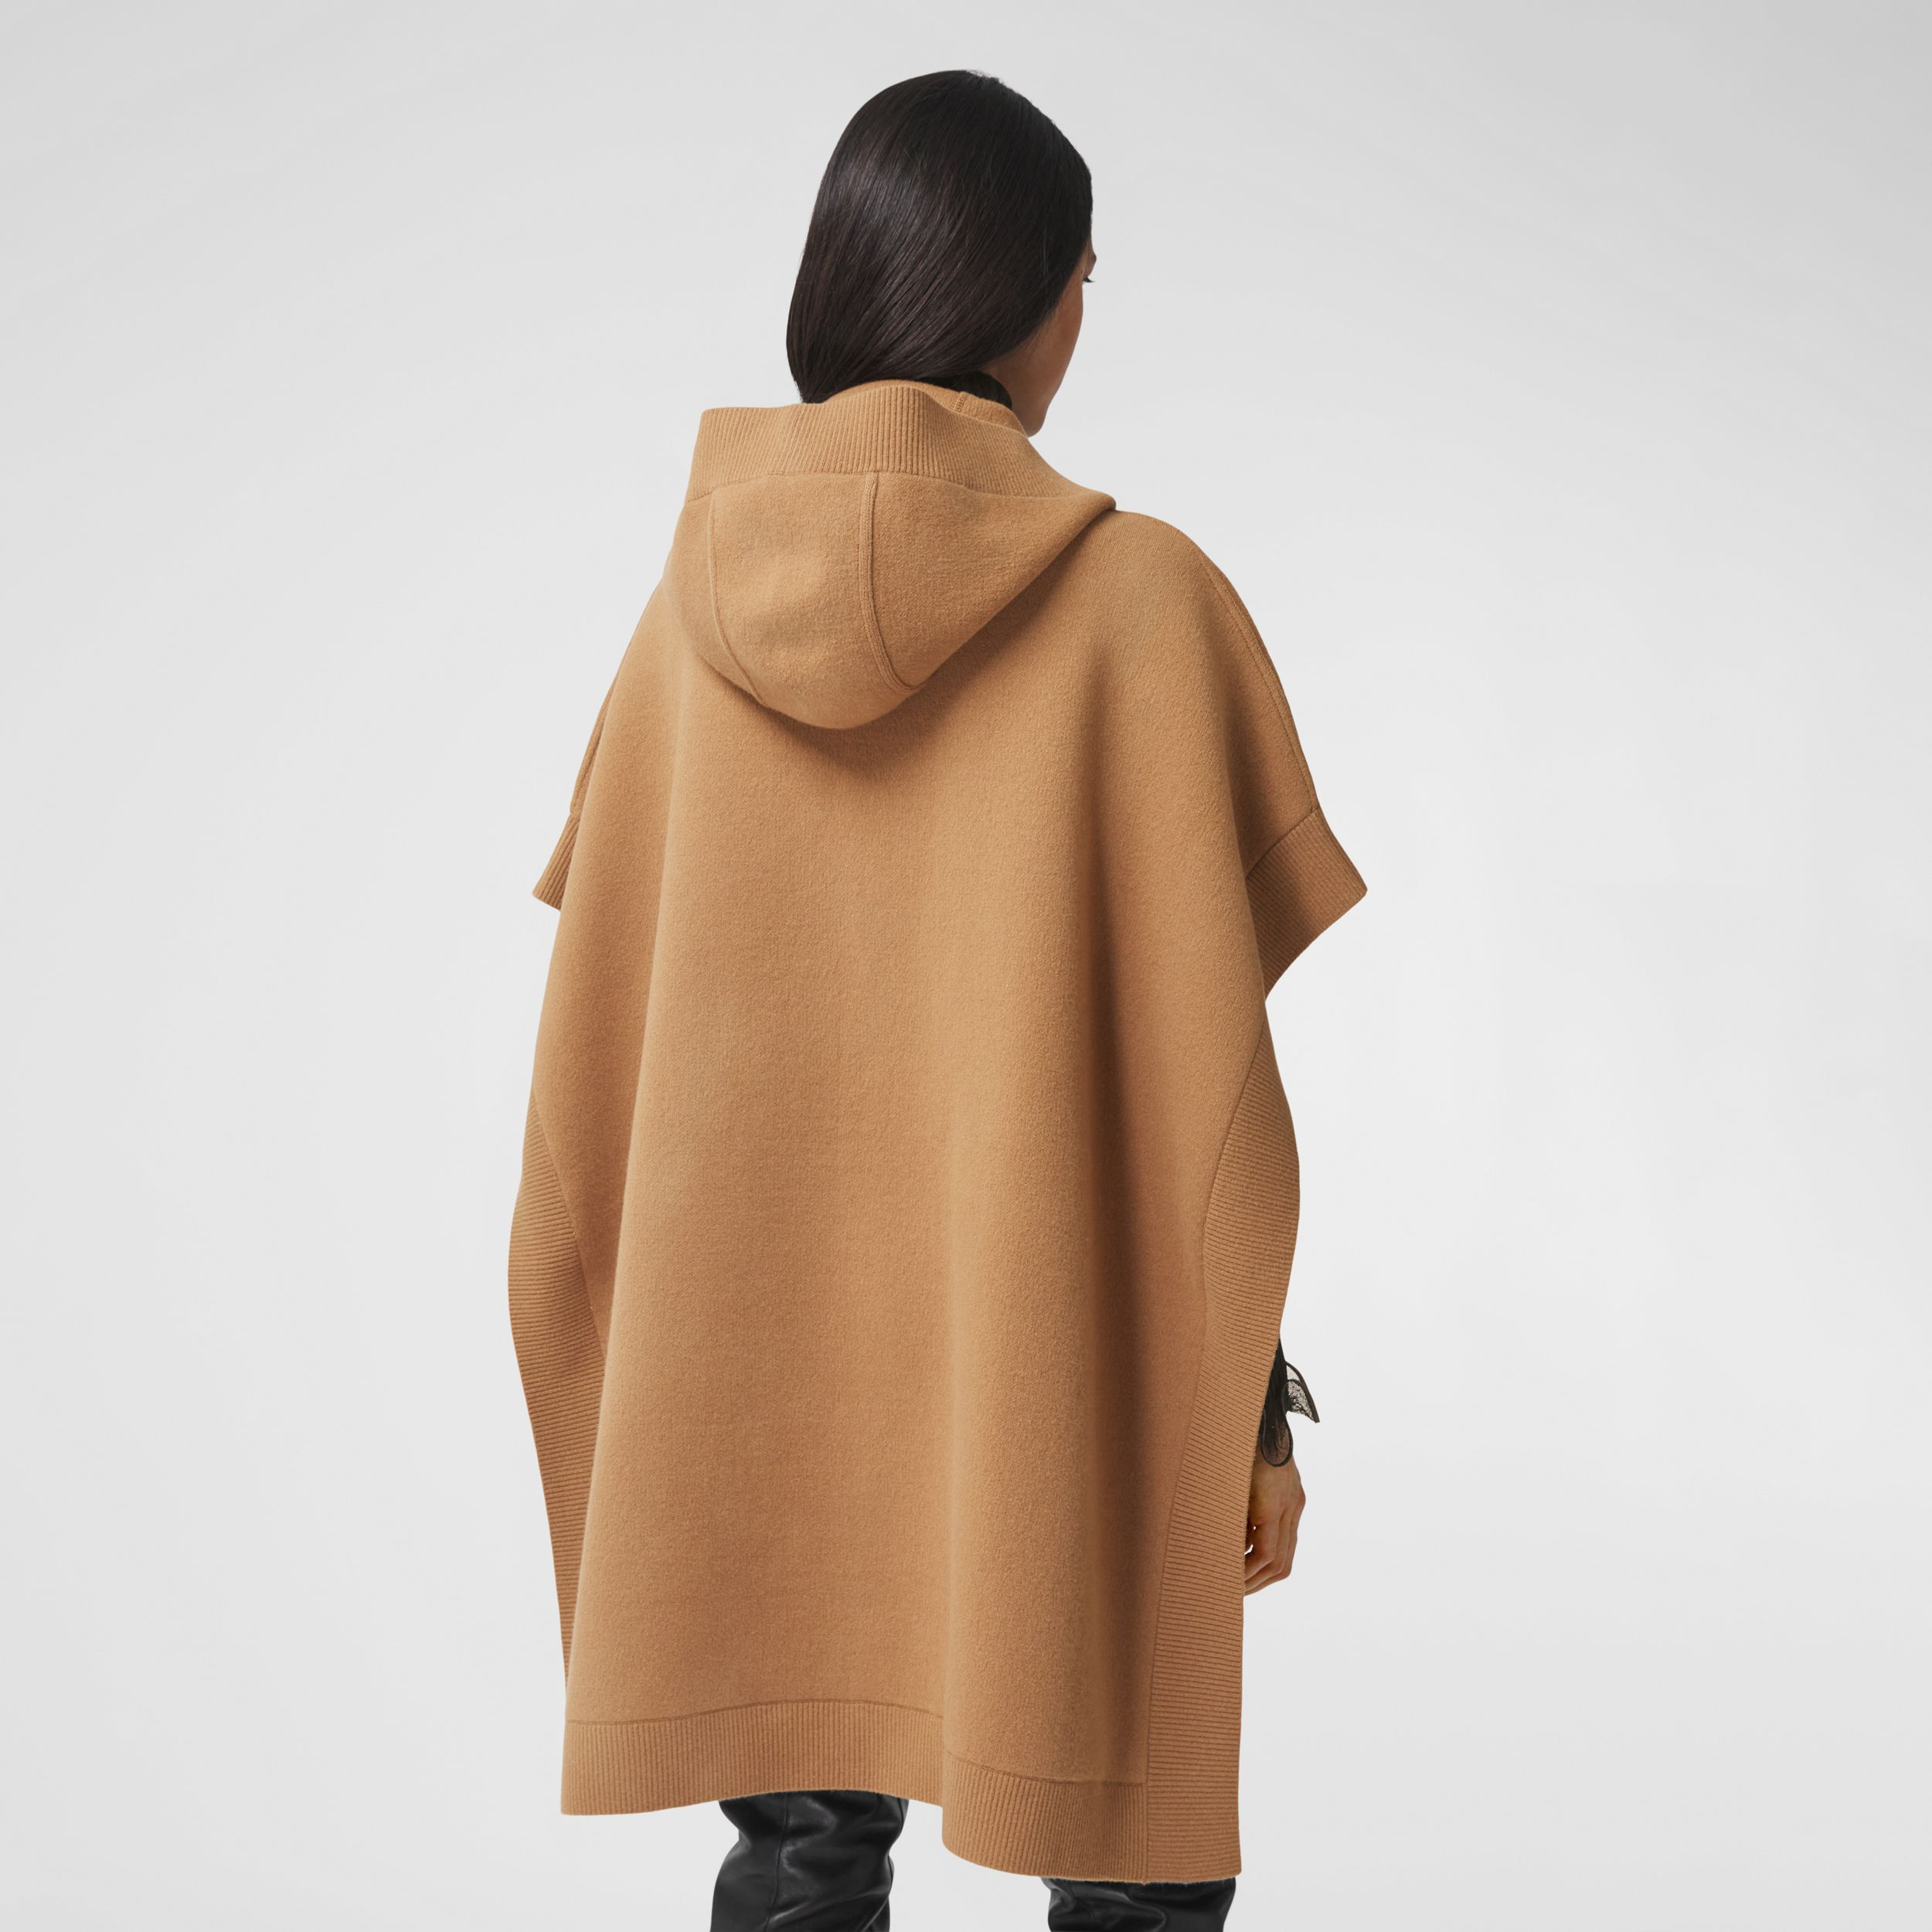 Monogram Motif Cashmere Blend Hooded Cape in Camel - Women | Burberry - 3